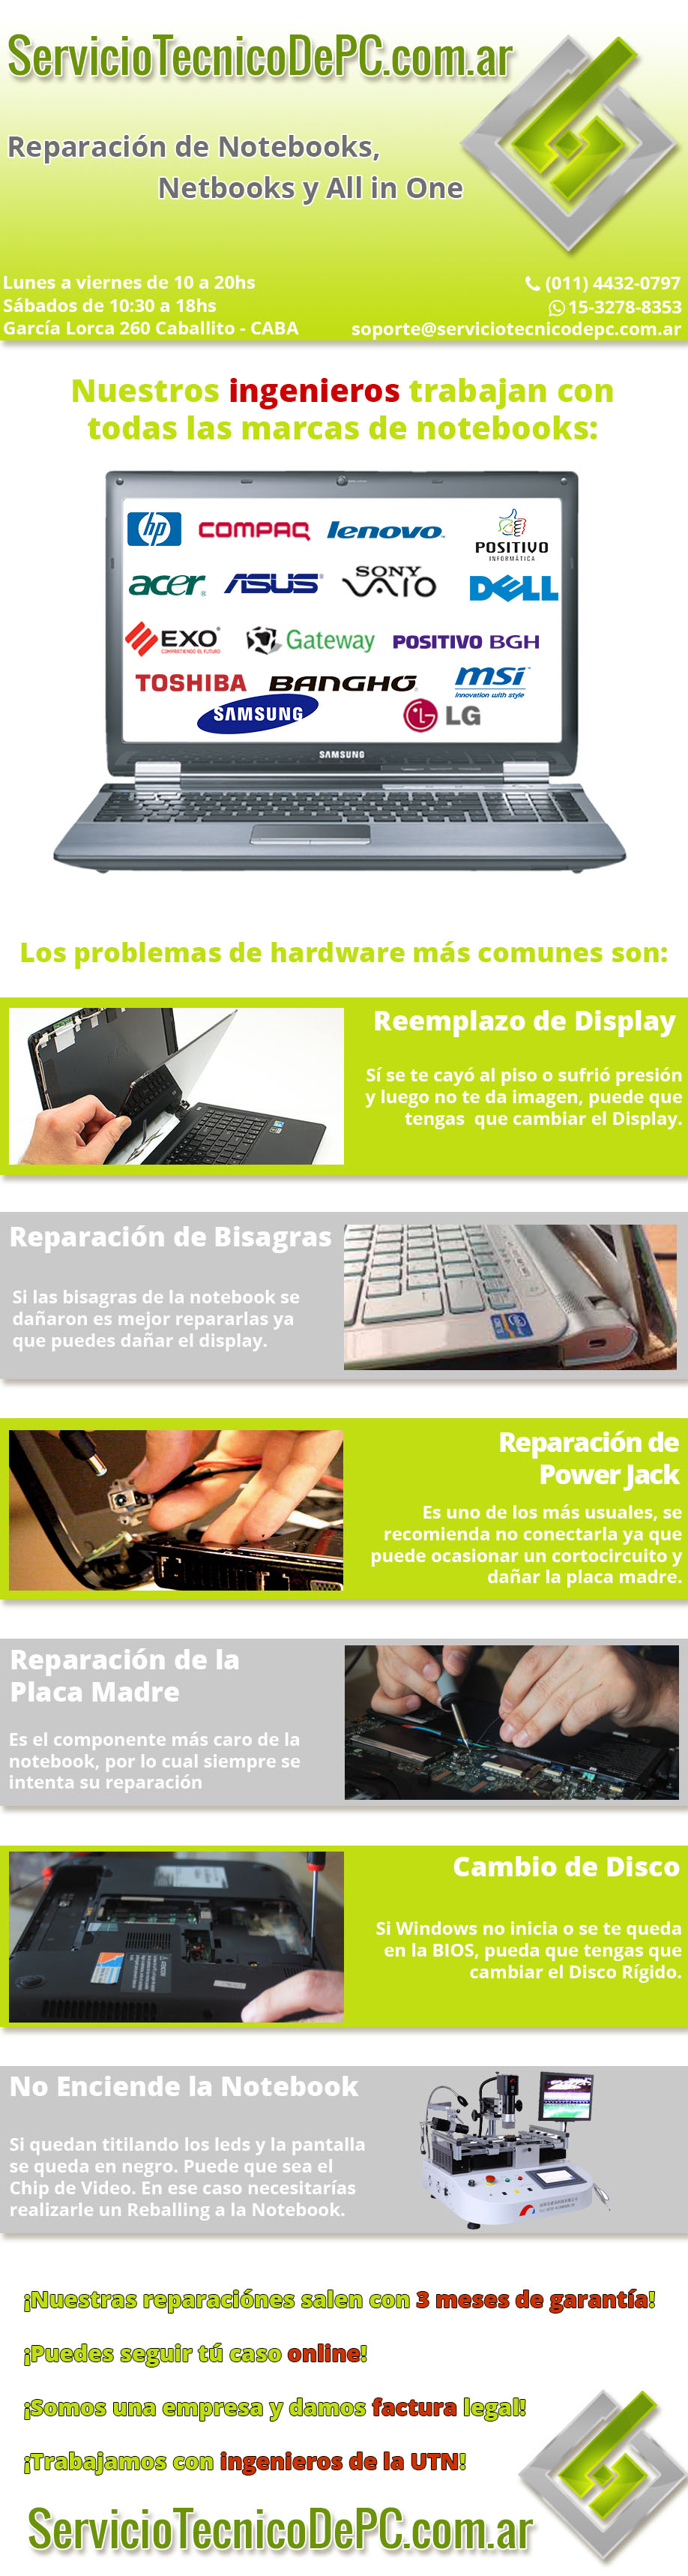 reparcion de notebooks, all in one y netbook